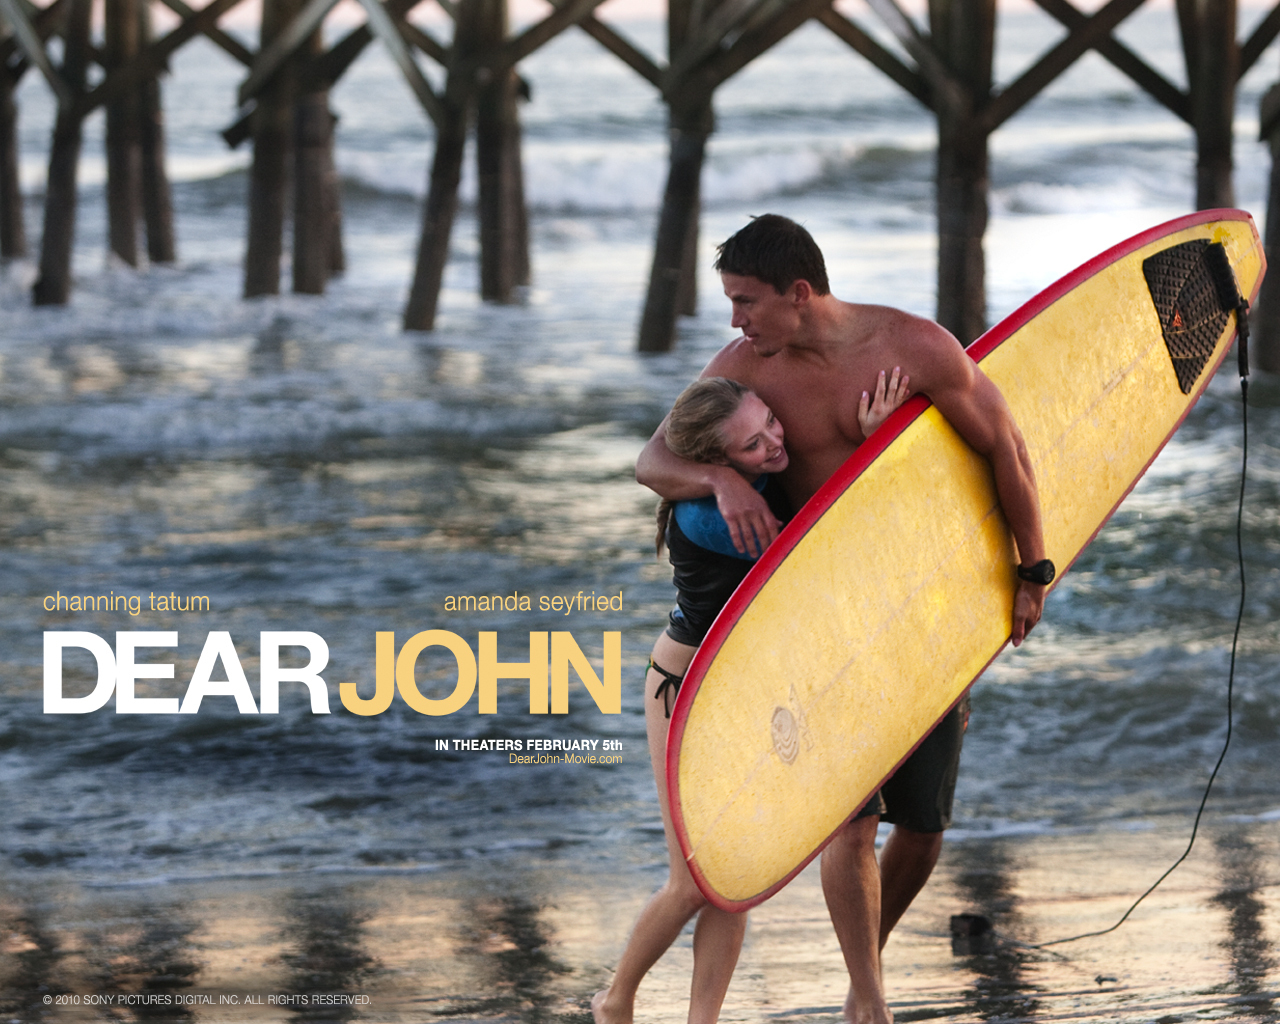 dear john Lasse hallstrom's dear john tells the heartbreaking story of two lovely young  people who fail to find happiness together because they're.